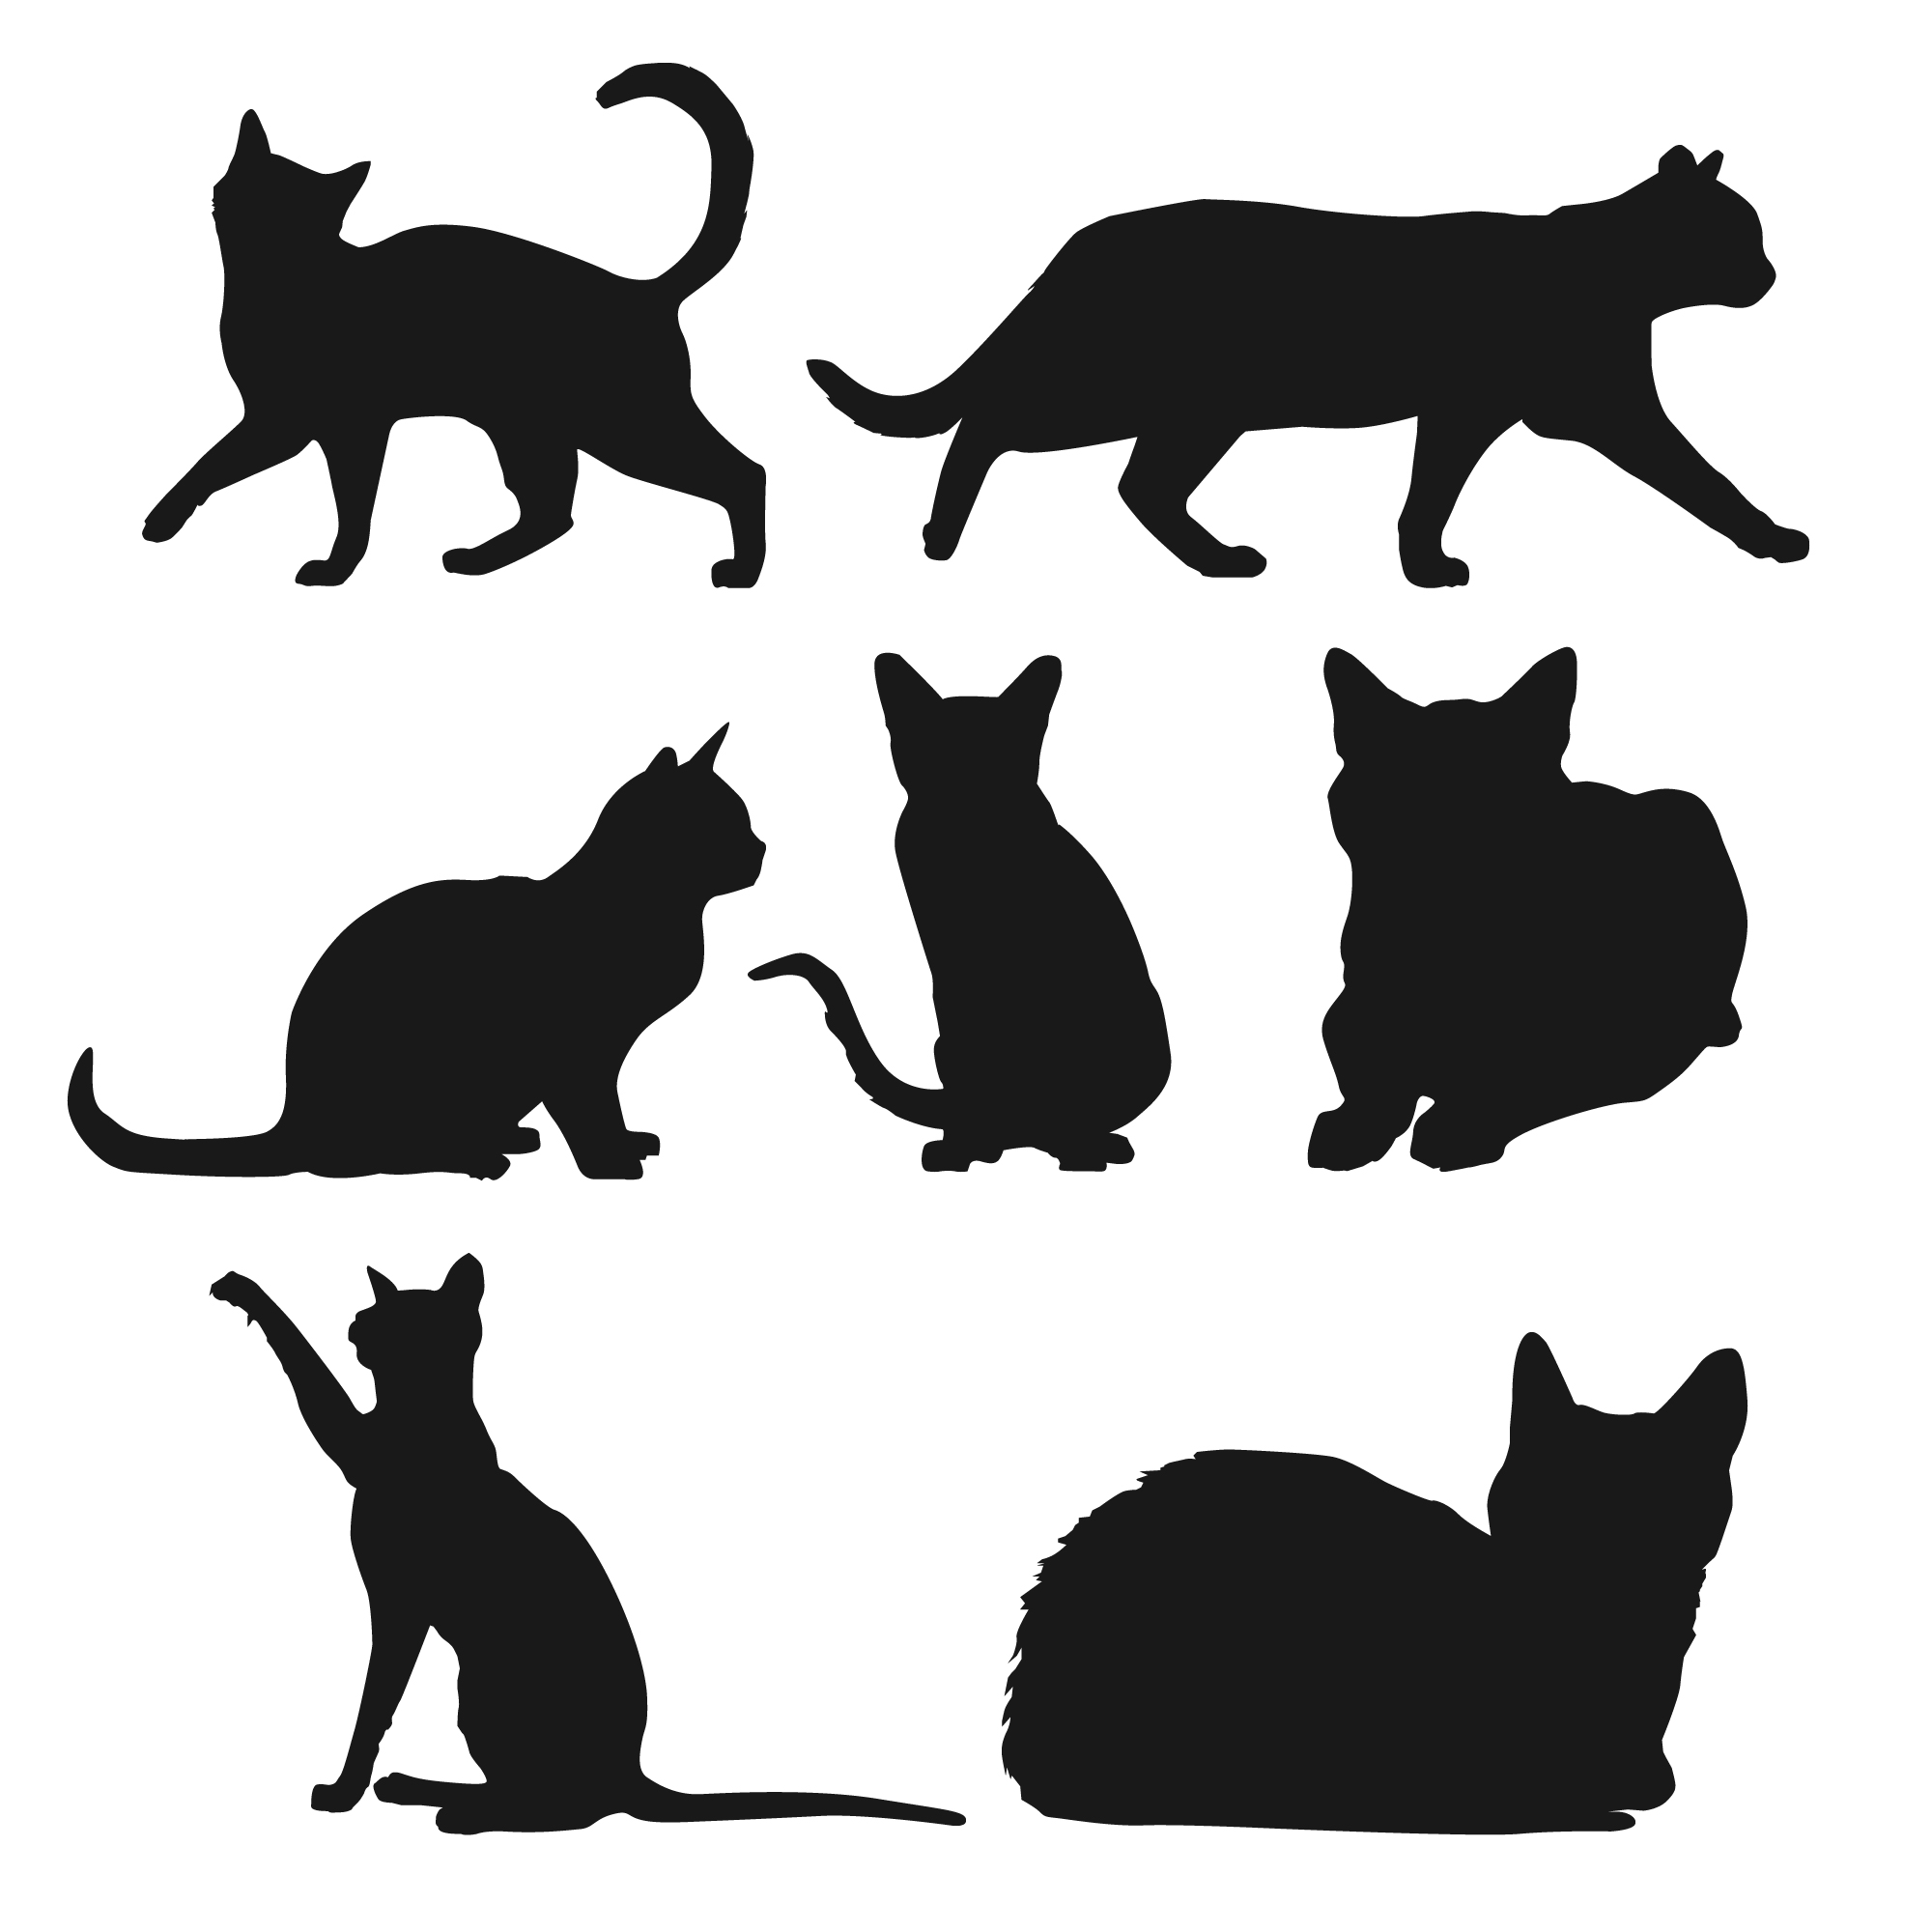 Silhouette of cats in different positions